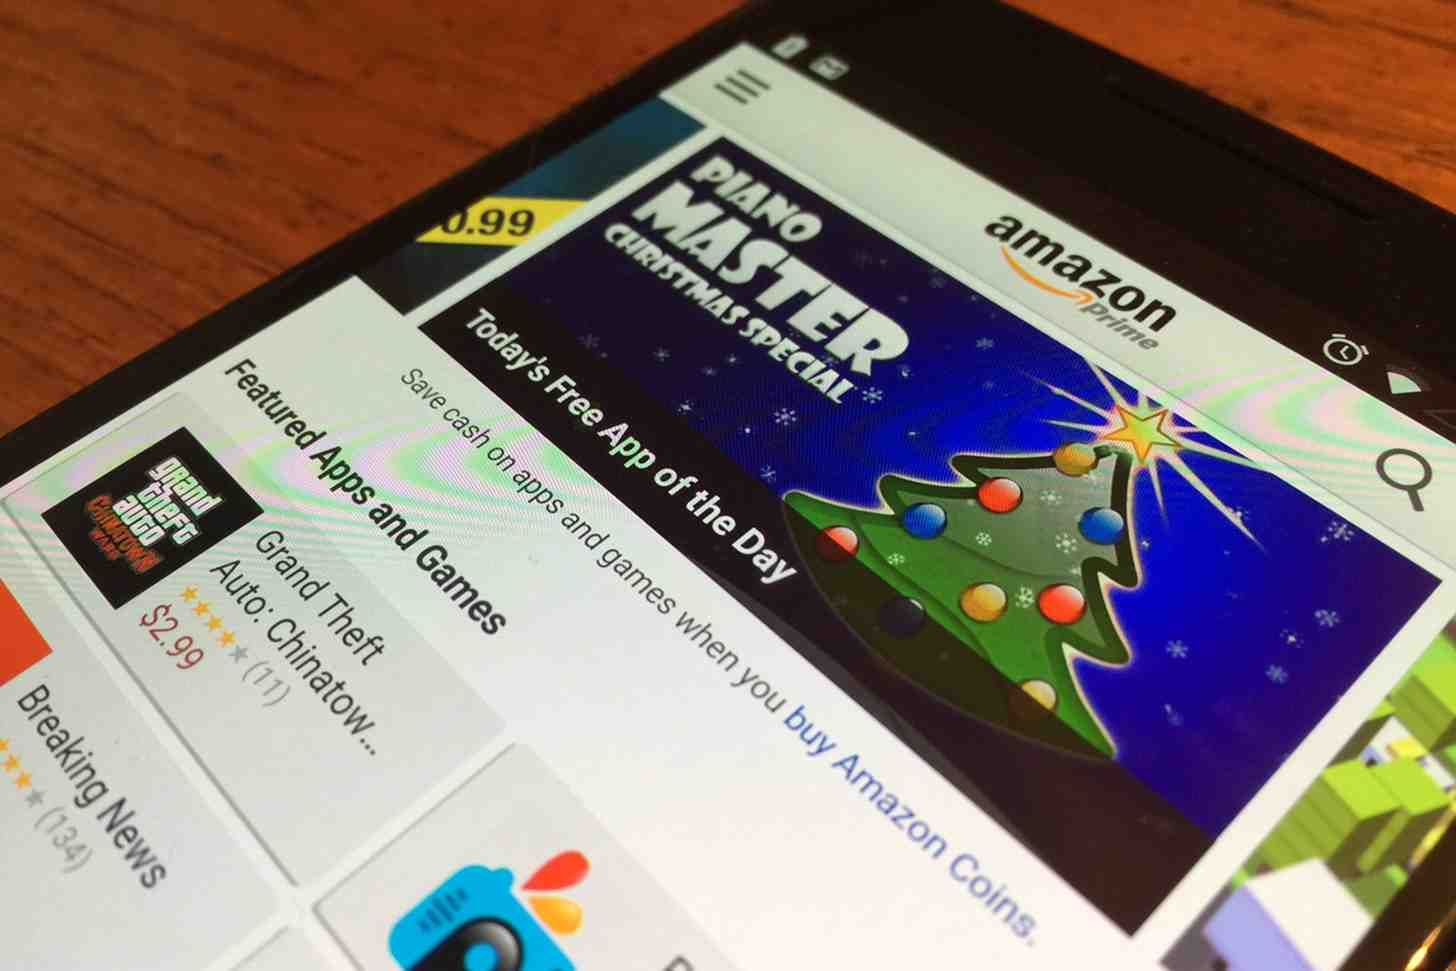 Amazon stops the Appstore test feature - https://www.tripletremelo.com/amazon-stops-the-appstore-test-feature/